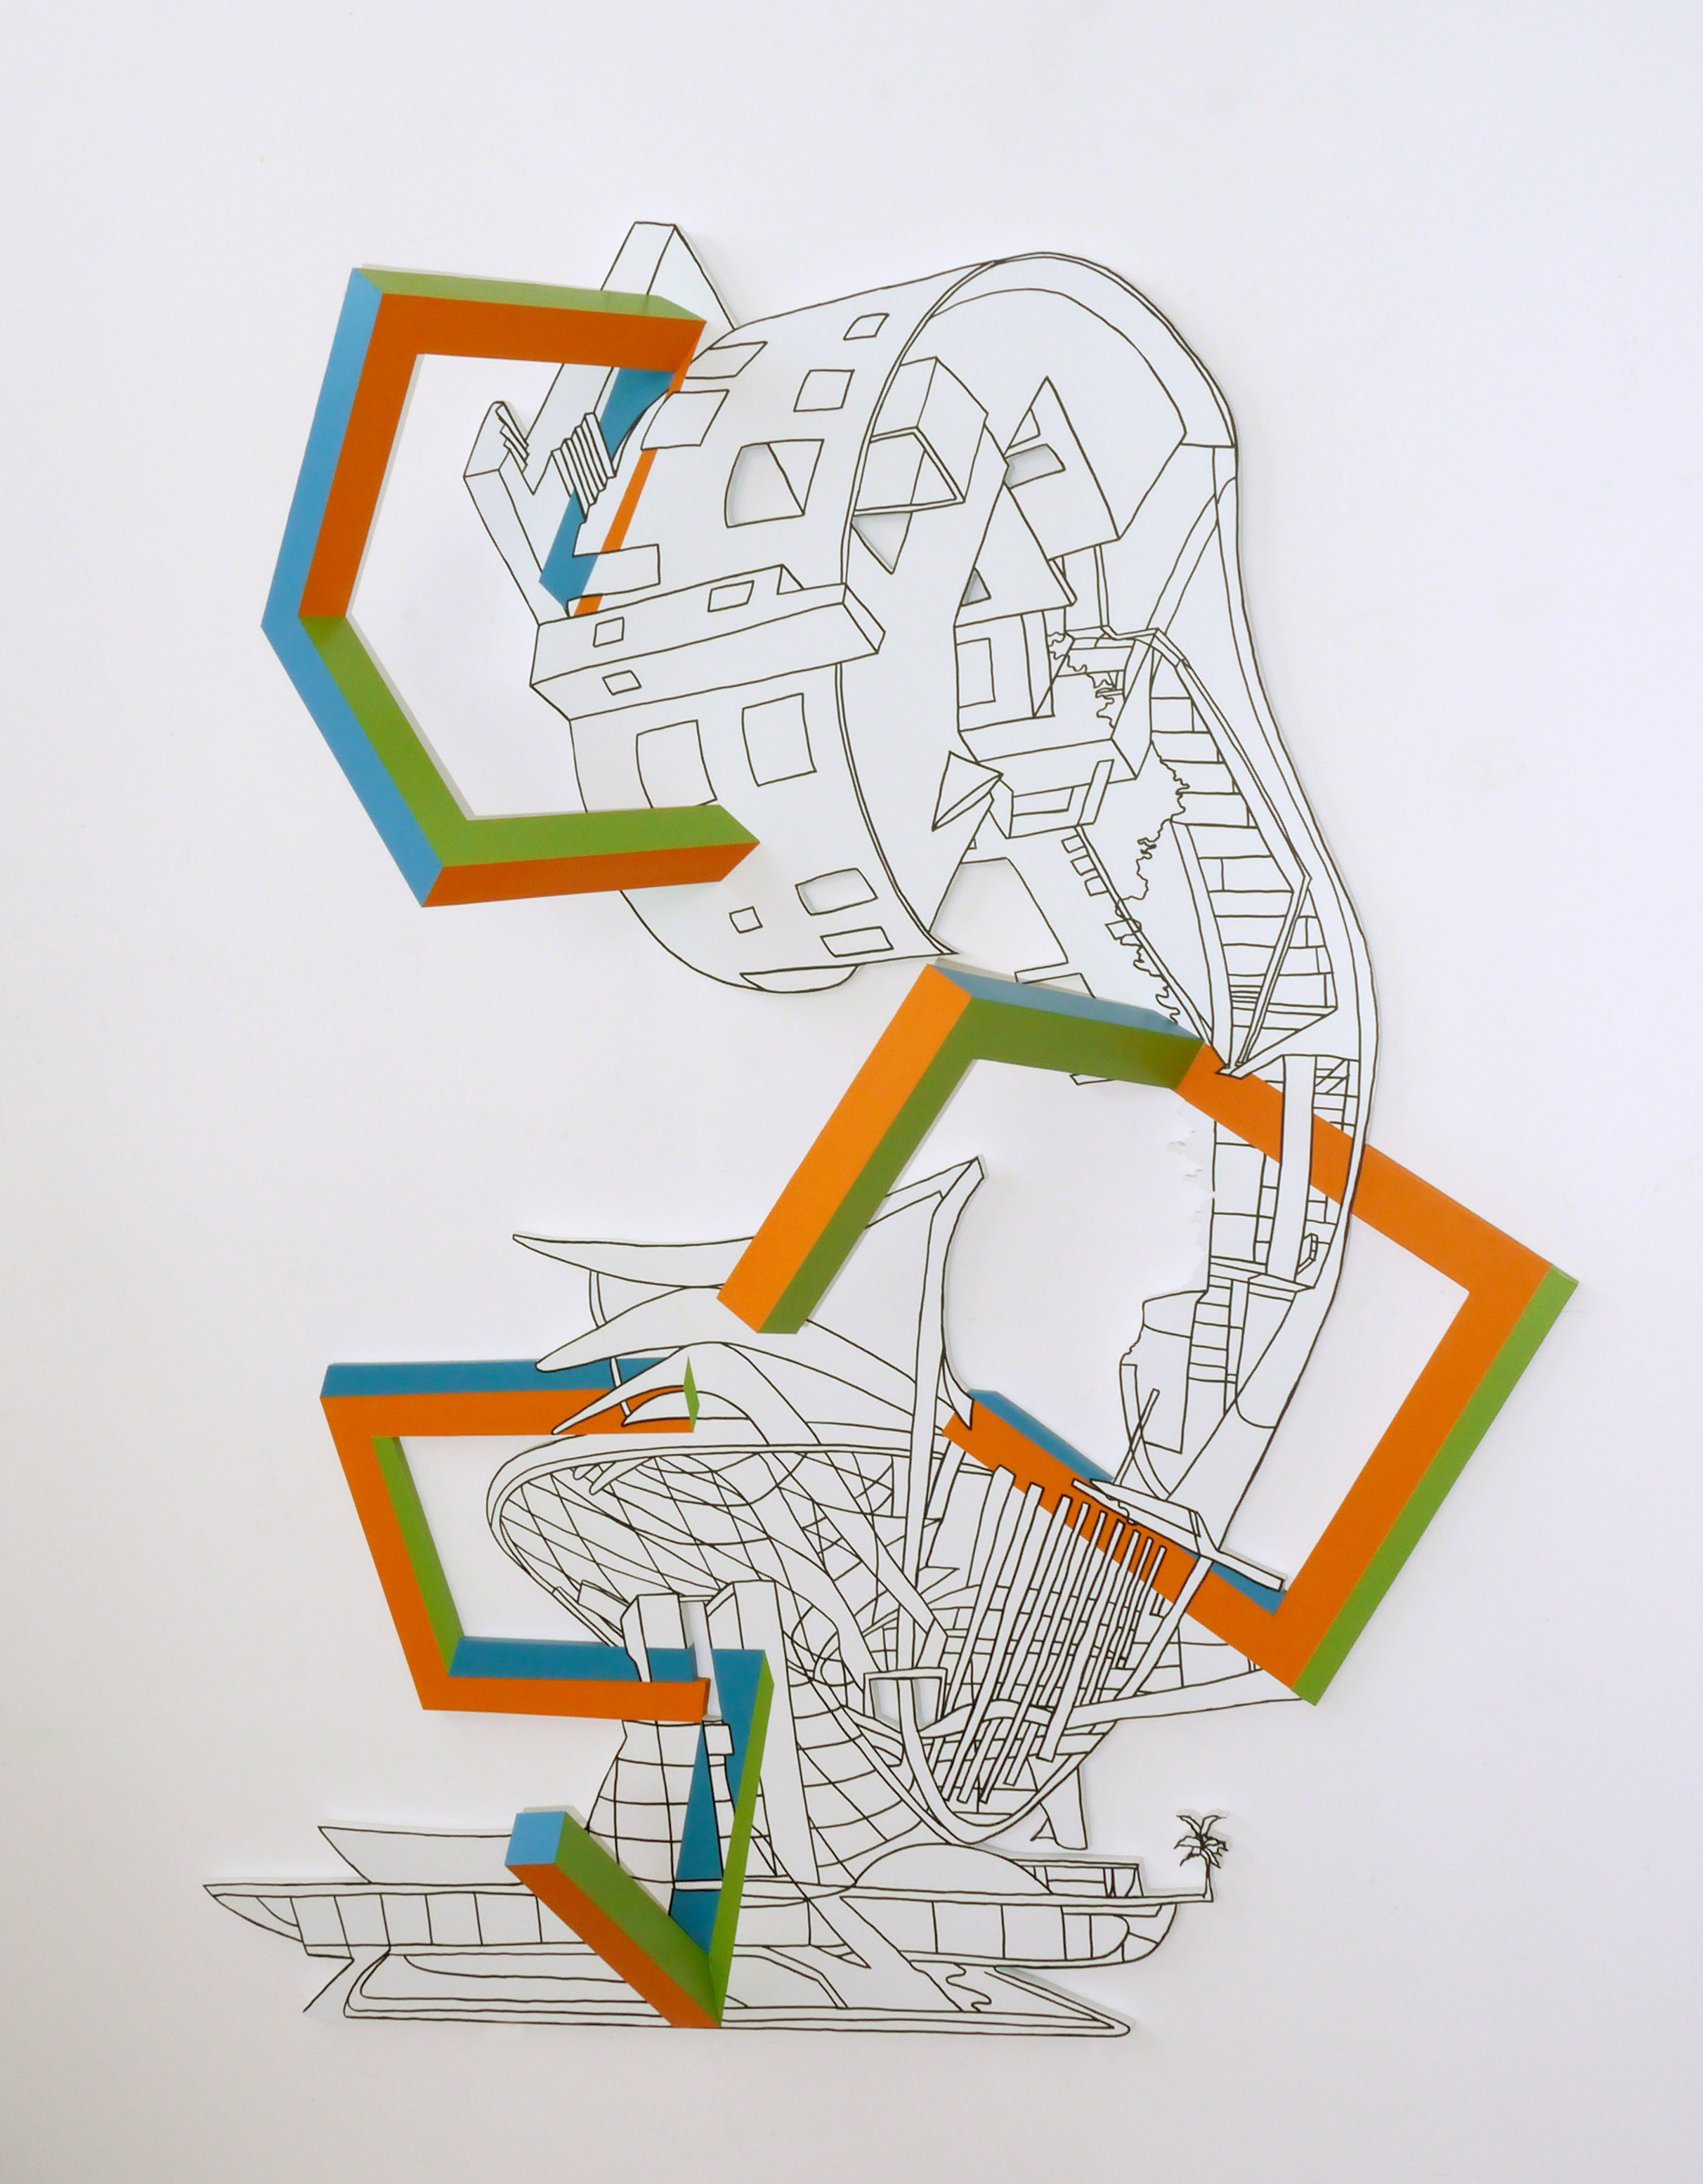 Kim Schoenstadt  Block Plan Series: USA/Brazil combination 3 , 2015 Pen and paint on wood with dimensional objects 152.4 x 106.7 x 35.6 cm 60 x 42 x 14 in Photo: © Kim Schoenstadt Courtesy of Chimento Contemporary